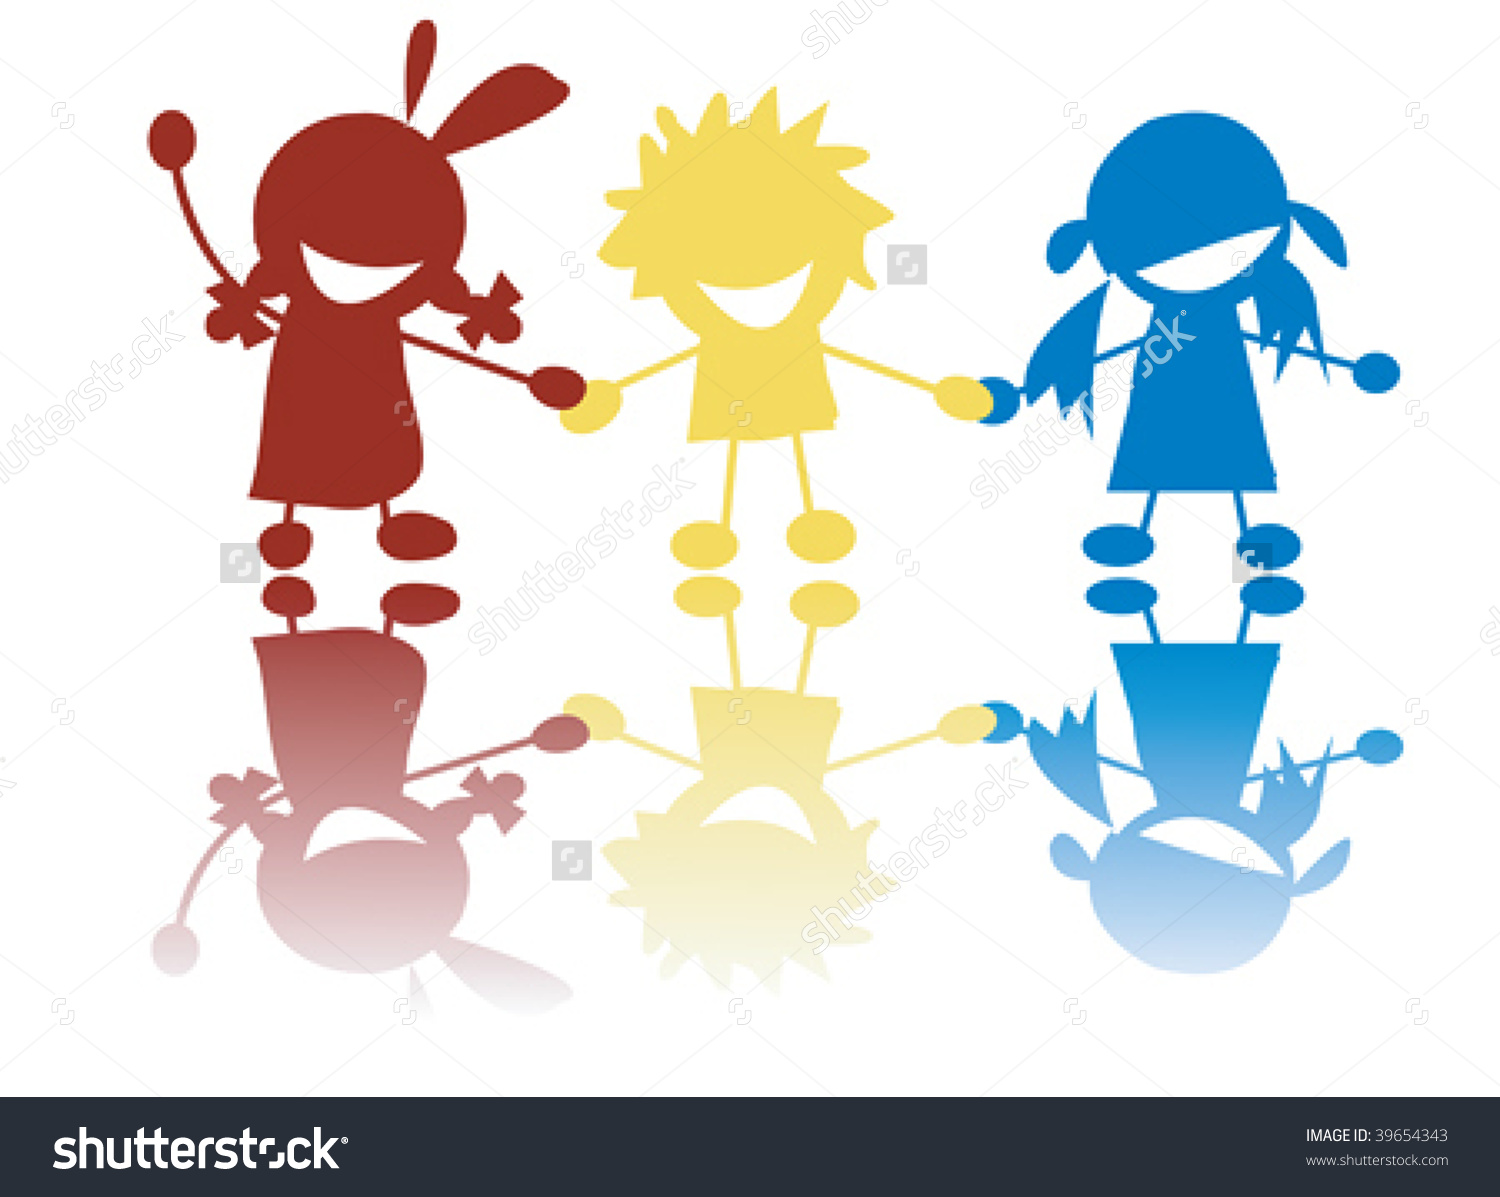 children holding hands color clipart #10